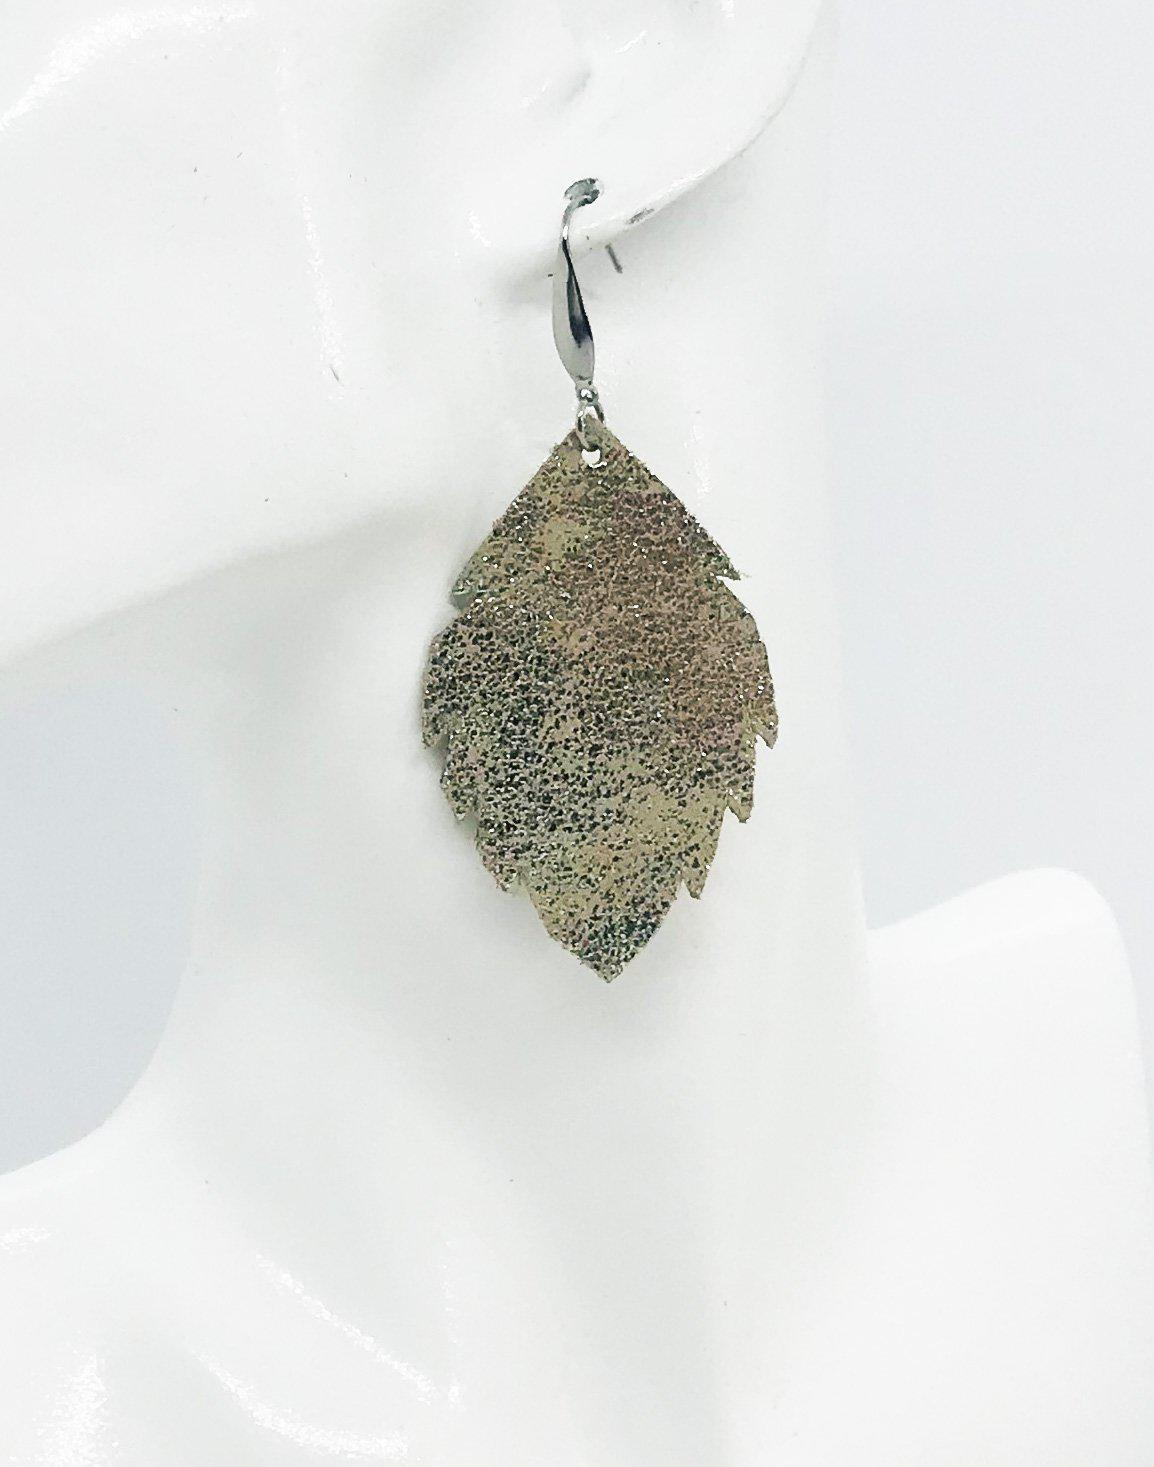 Platinum Crackle Leather Earrings - E19-1182